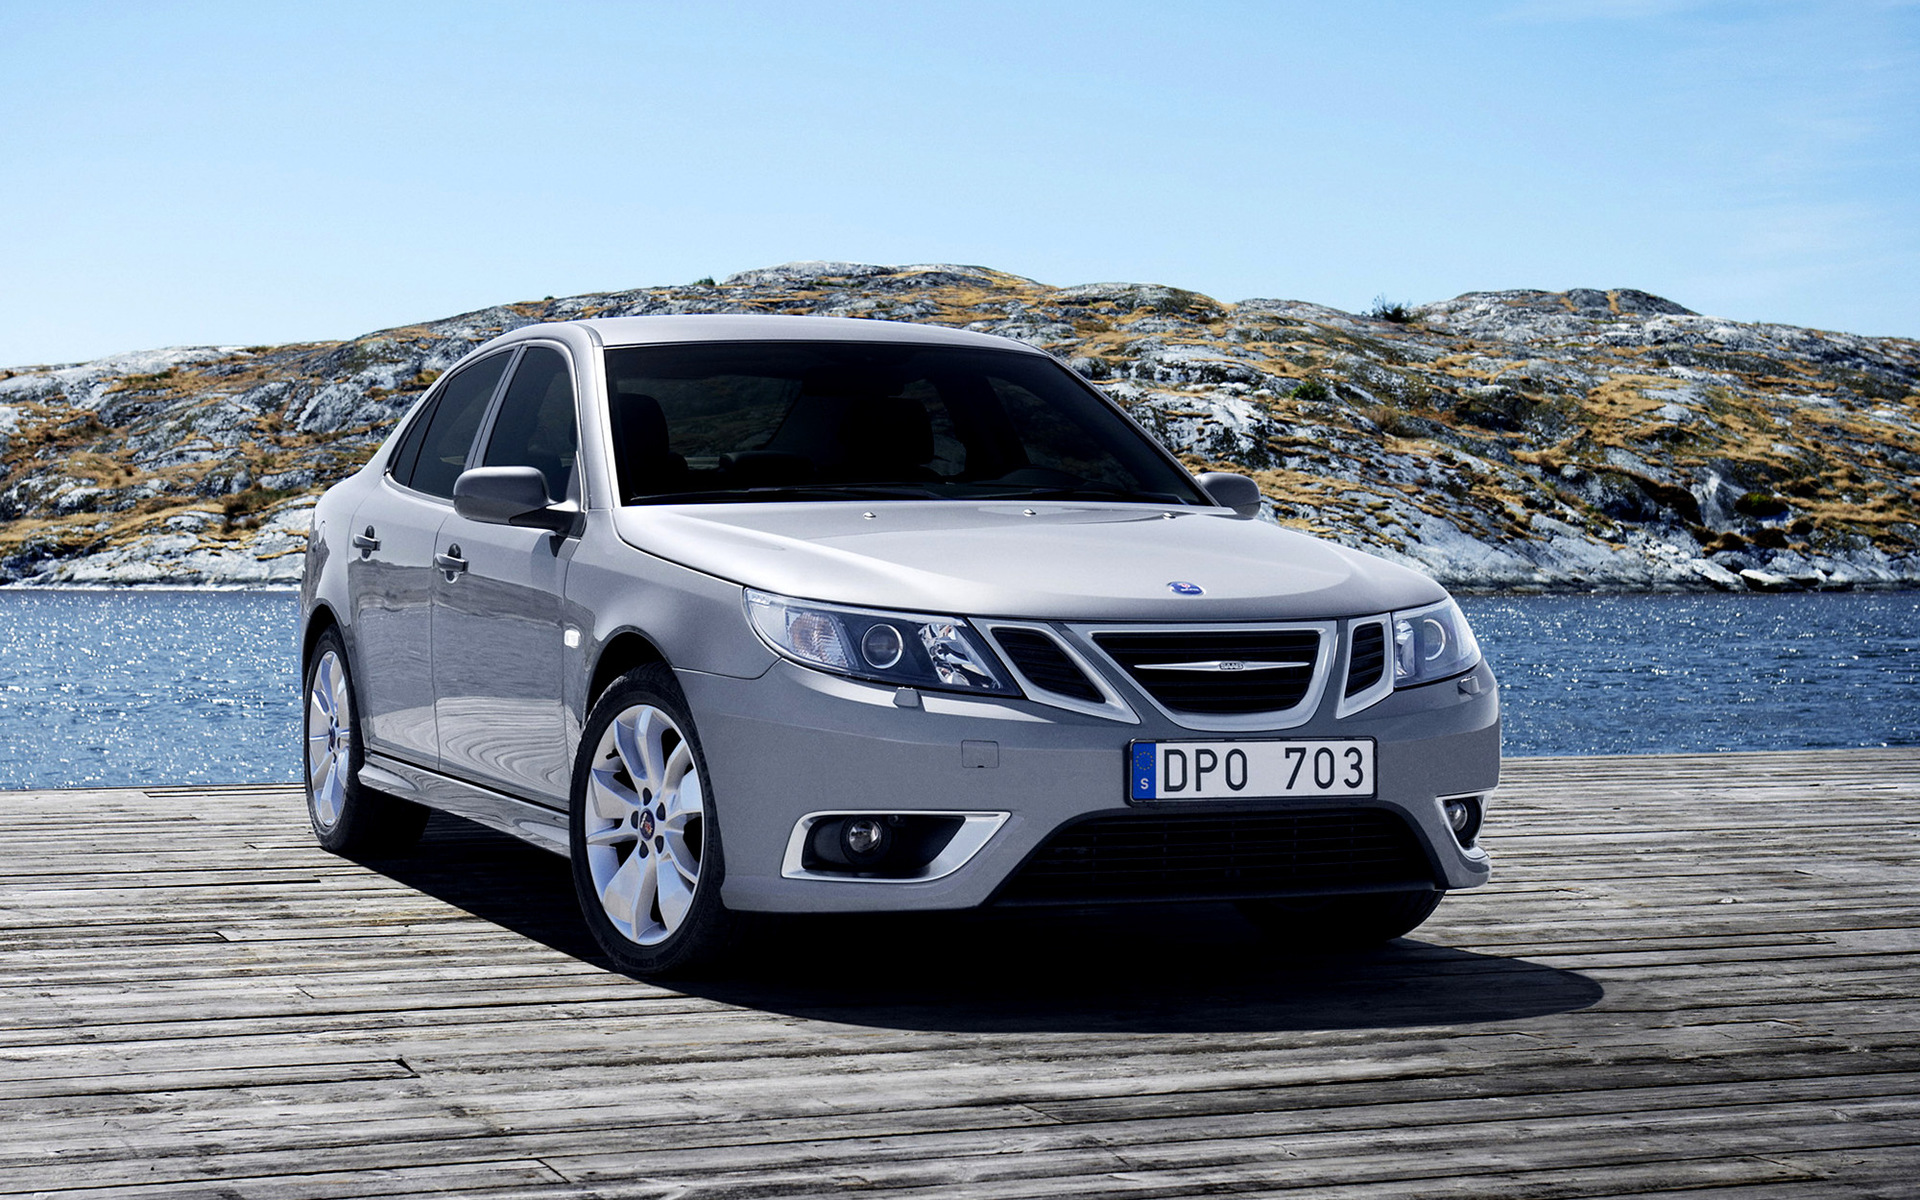 2008 Saab 9 3 Aero Sport Sedan Wallpapers And Hd Images